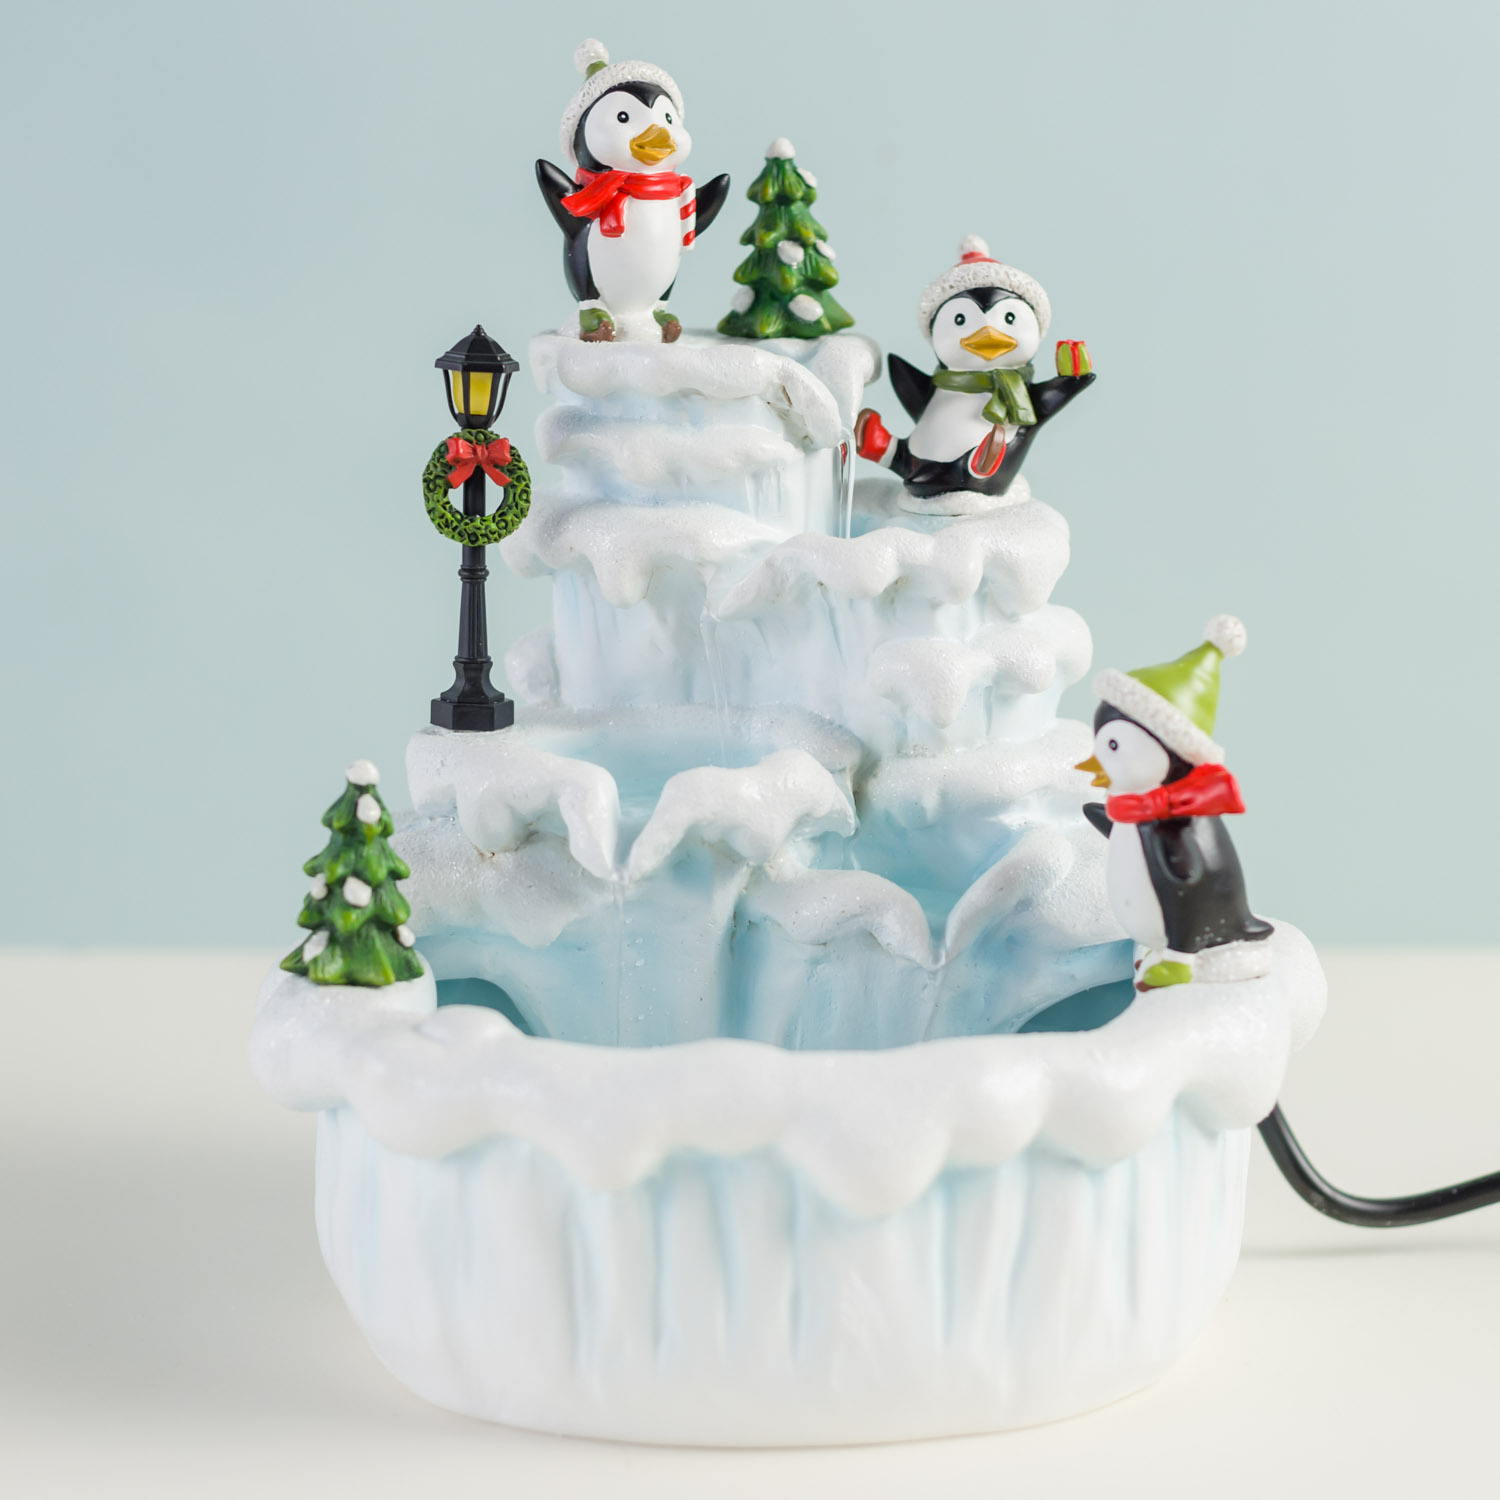 Penguin Fountain - Cracker Barrel Old Country Store